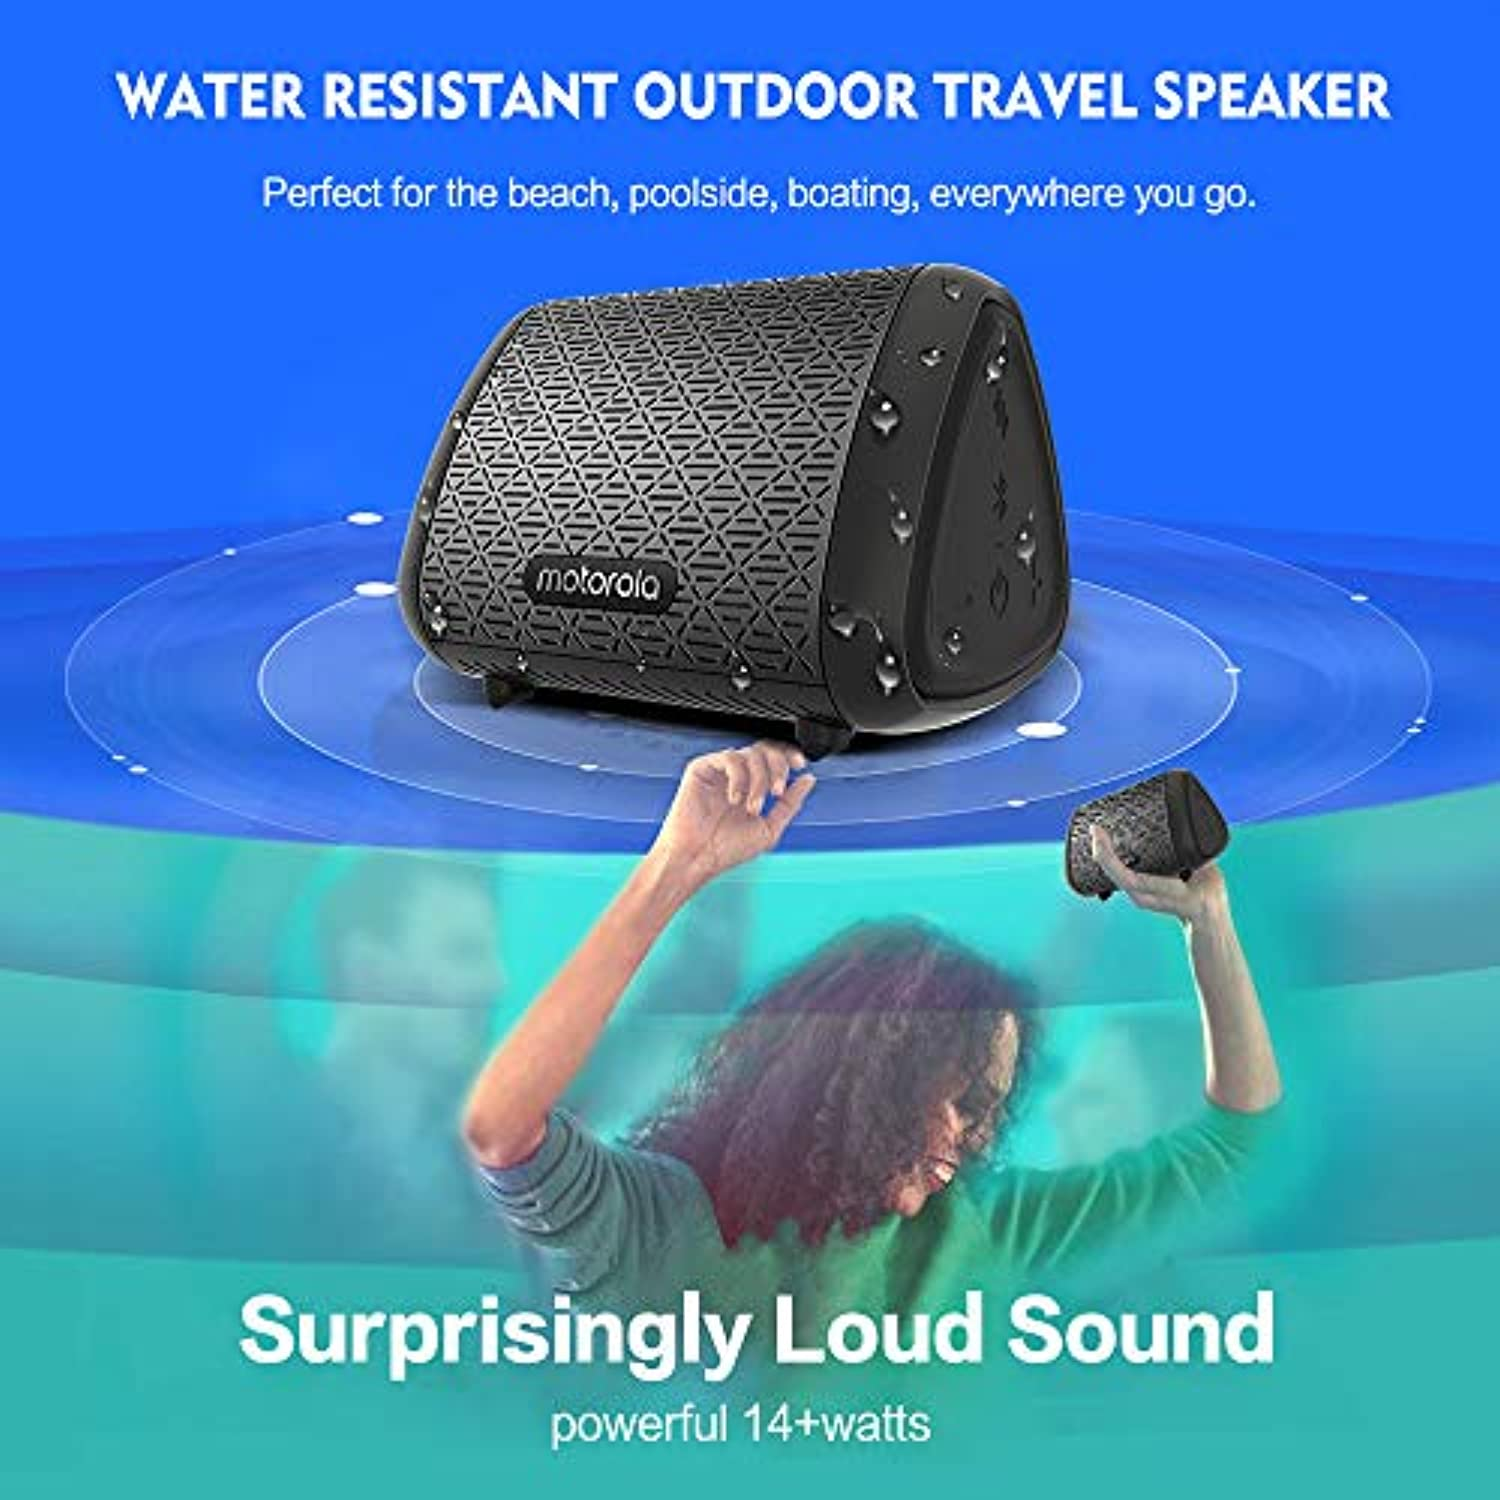 Classier: Buy Motorola Motorola SonicSubs240 Portable Bluetooth Speakers | IPX5 Splash Proof Bluetooth Speaker |11Hours Speaker Compatible with Voice Assistant |Loud Extra Bass Portable Speakers Bluetooth Wireless